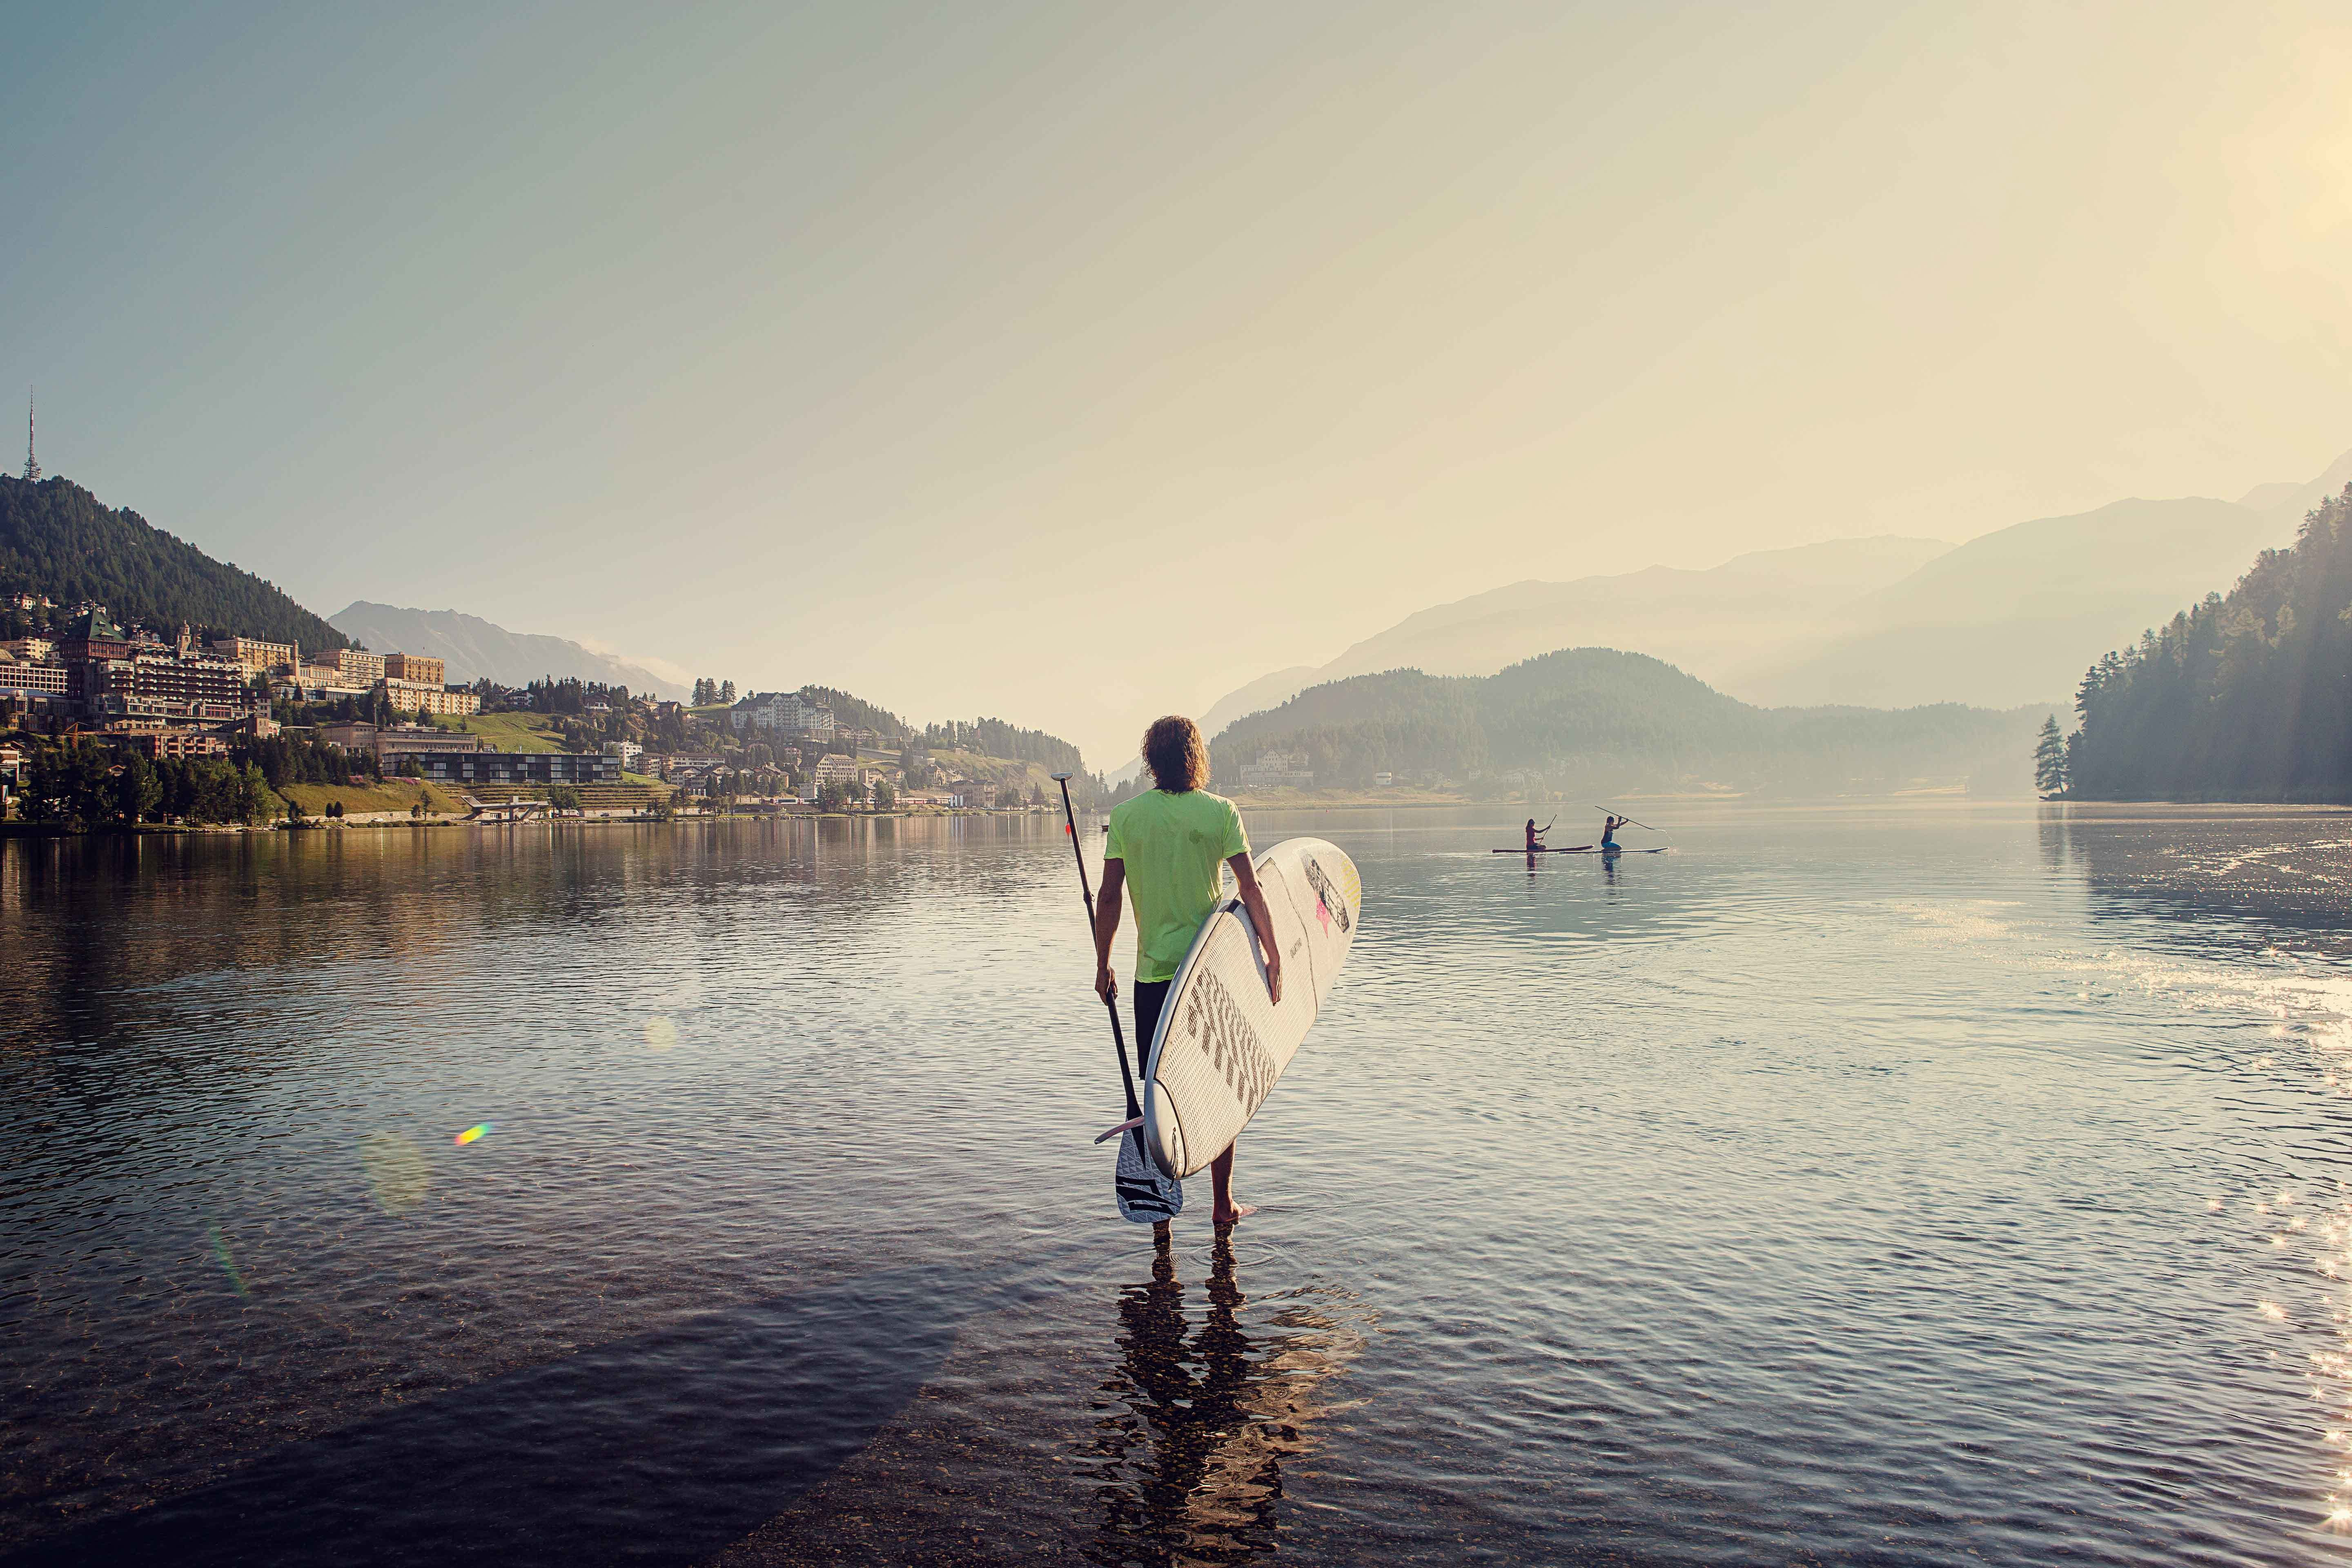 Stand-up paddleboarding at Lake St. Moritz